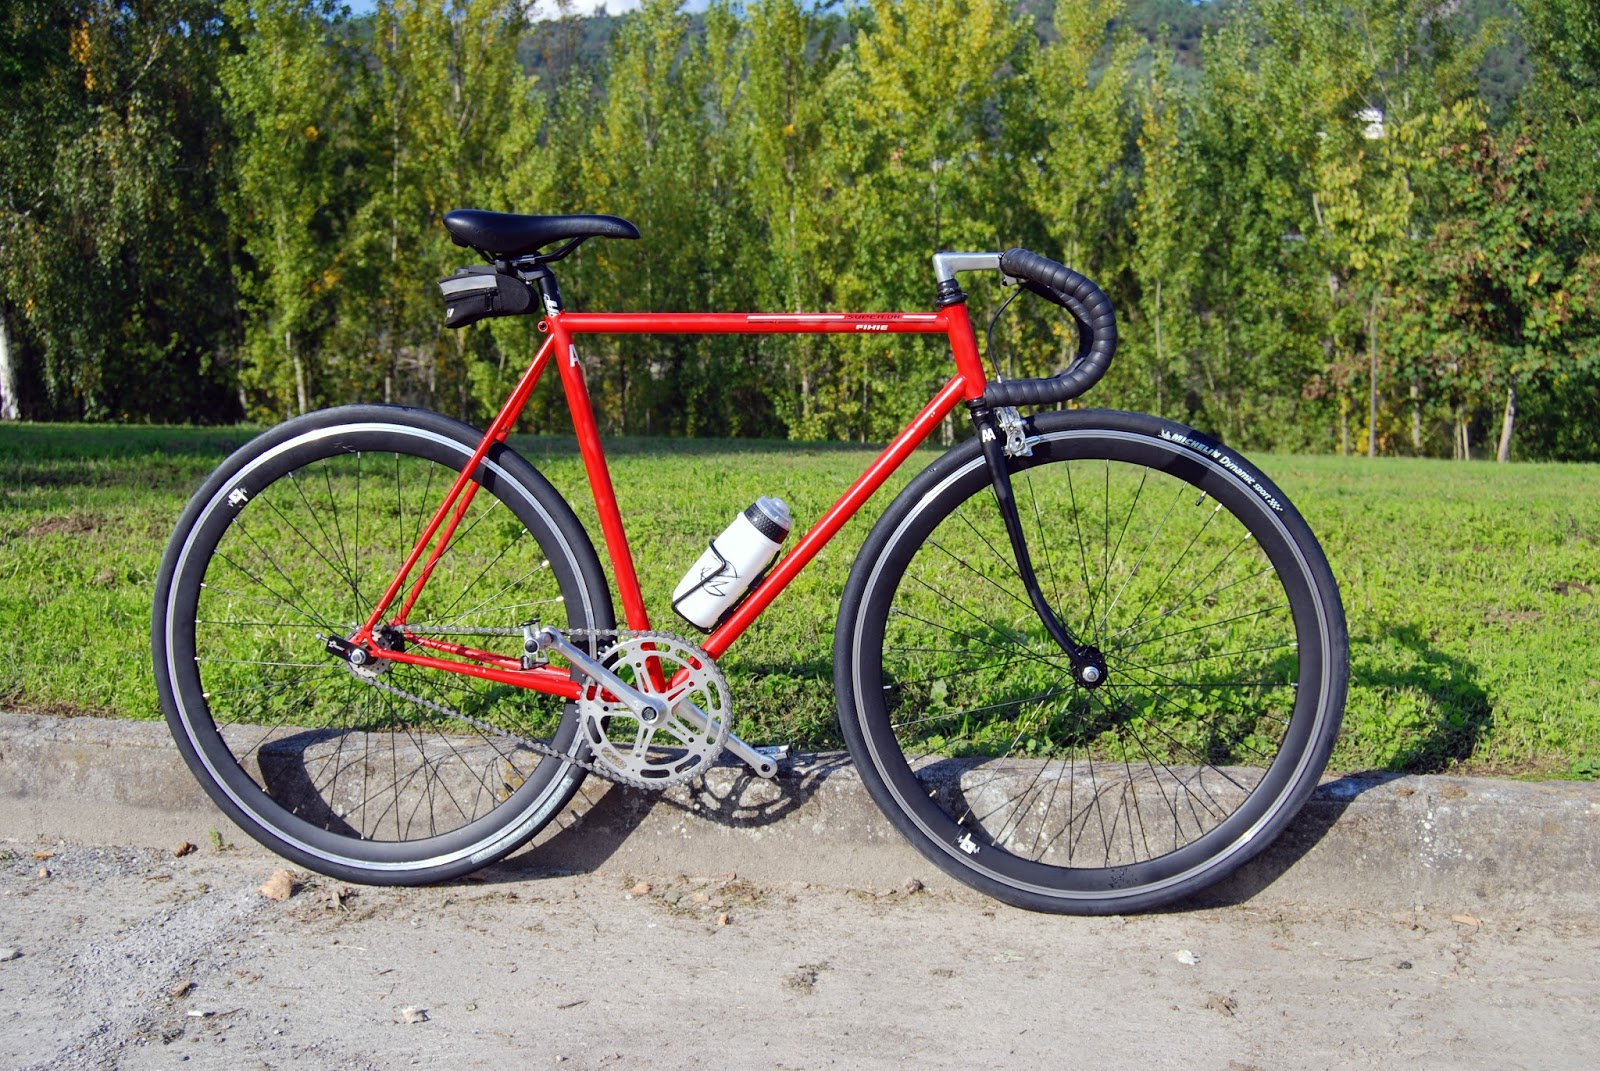 The Fixed Gear World: #newLife | Super BH L3000 AA by Marcos "|1600|1071|?|en|2|525c853b2fc50a060d64fd348821375b|False|UNLIKELY|0.3202266991138458